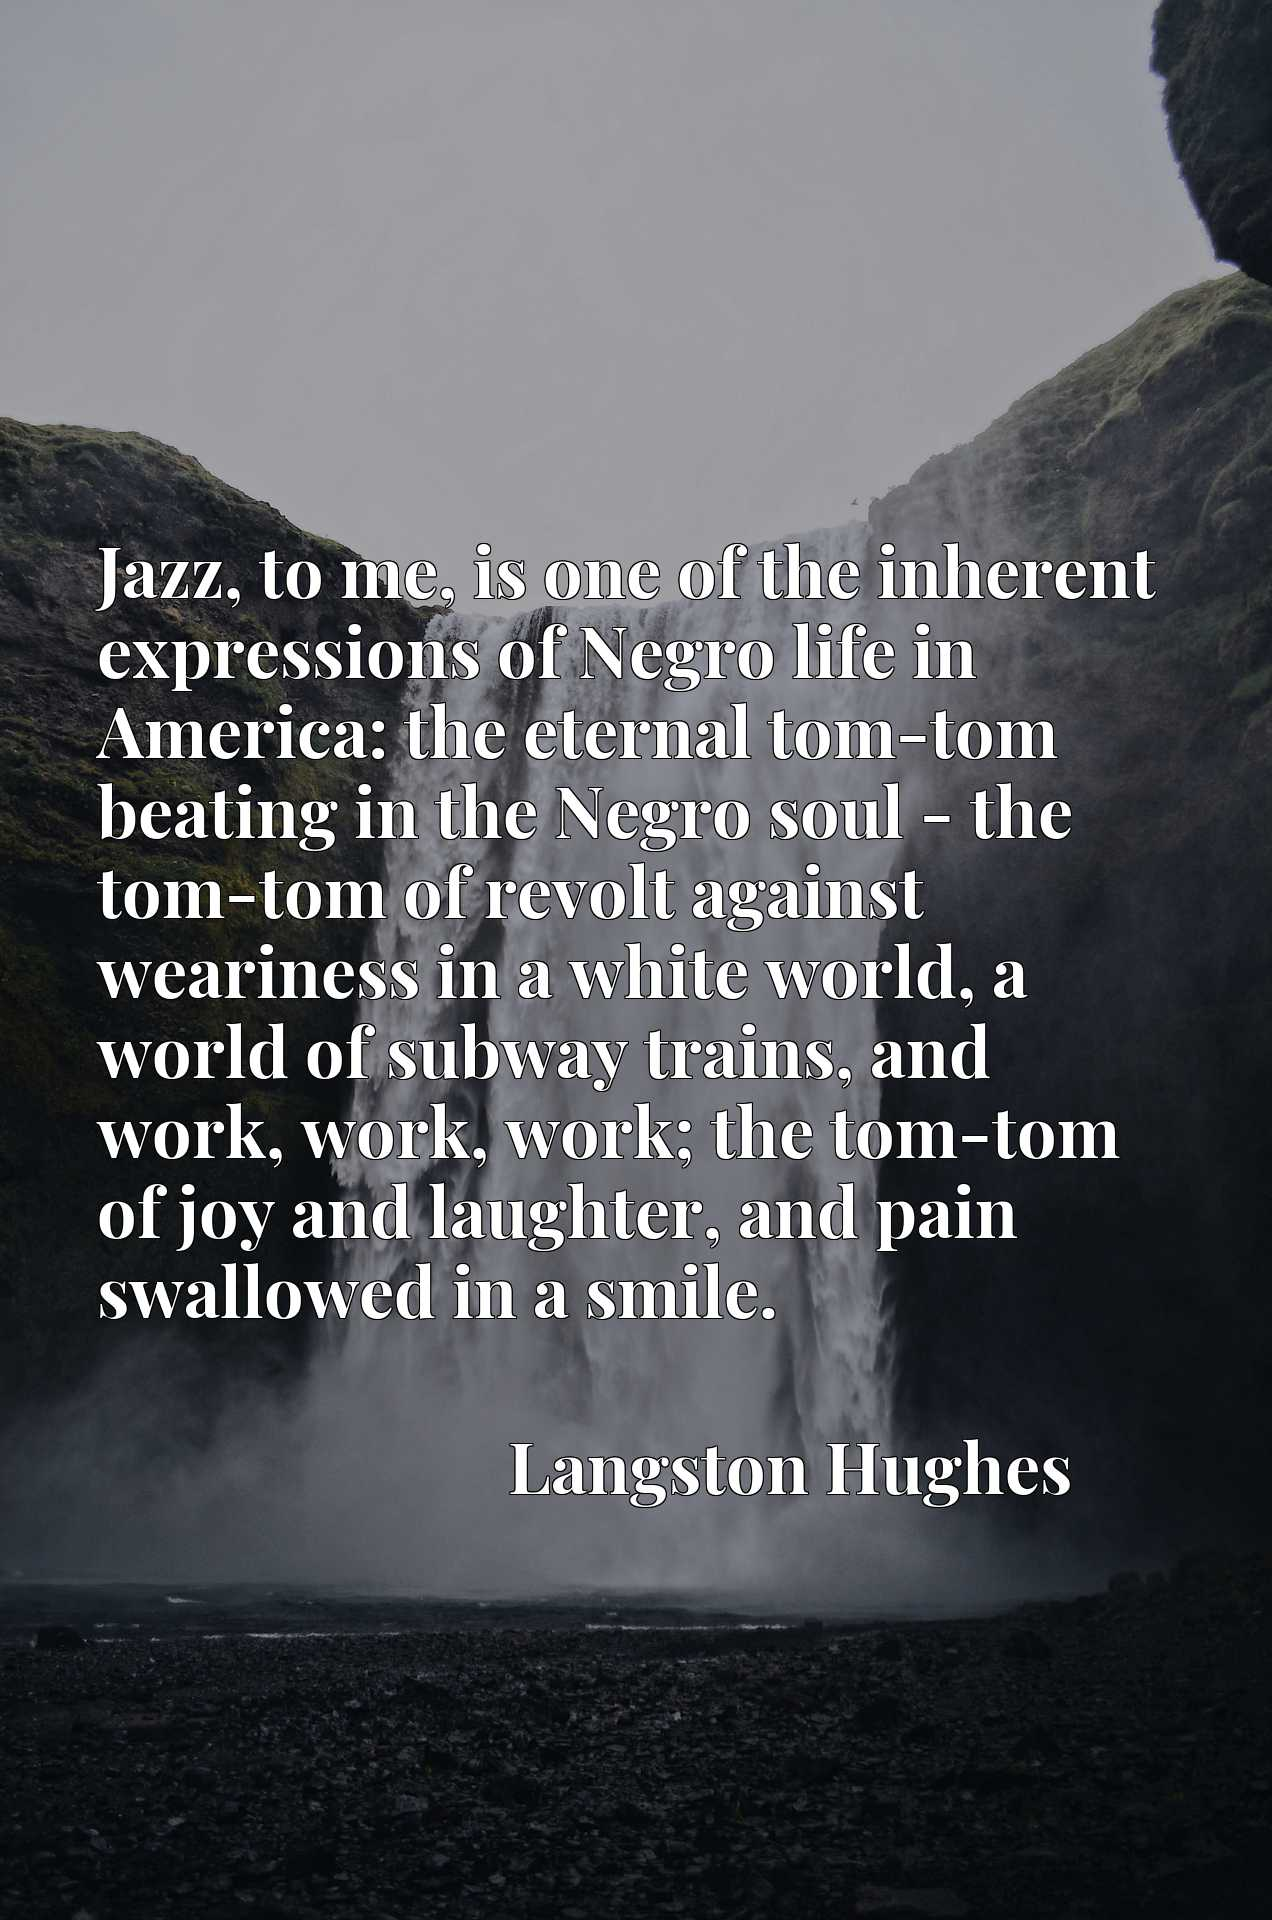 Jazz, to me, is one of the inherent expressions of Negro life in America: the eternal tom-tom beating in the Negro soul - the tom-tom of revolt against weariness in a white world, a world of subway trains, and work, work, work; the tom-tom of joy and laughter, and pain swallowed in a smile.